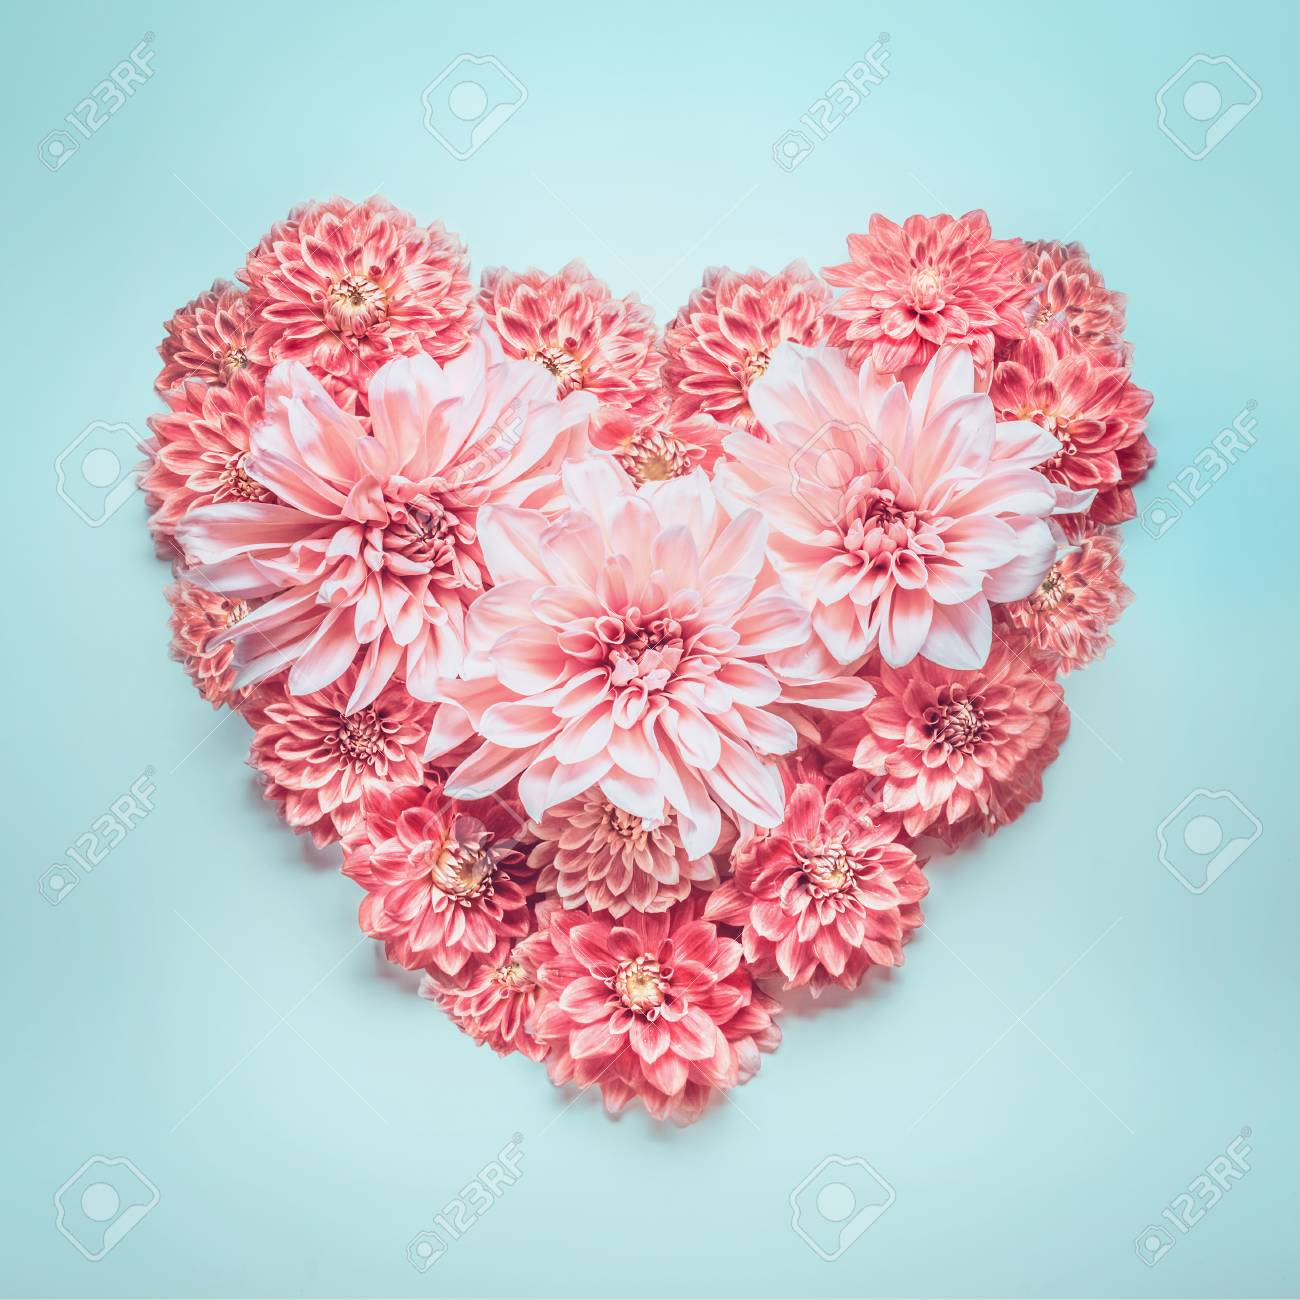 Pastel Color Heart Made Of Lovely Pink Flowers On Turquoise Blue